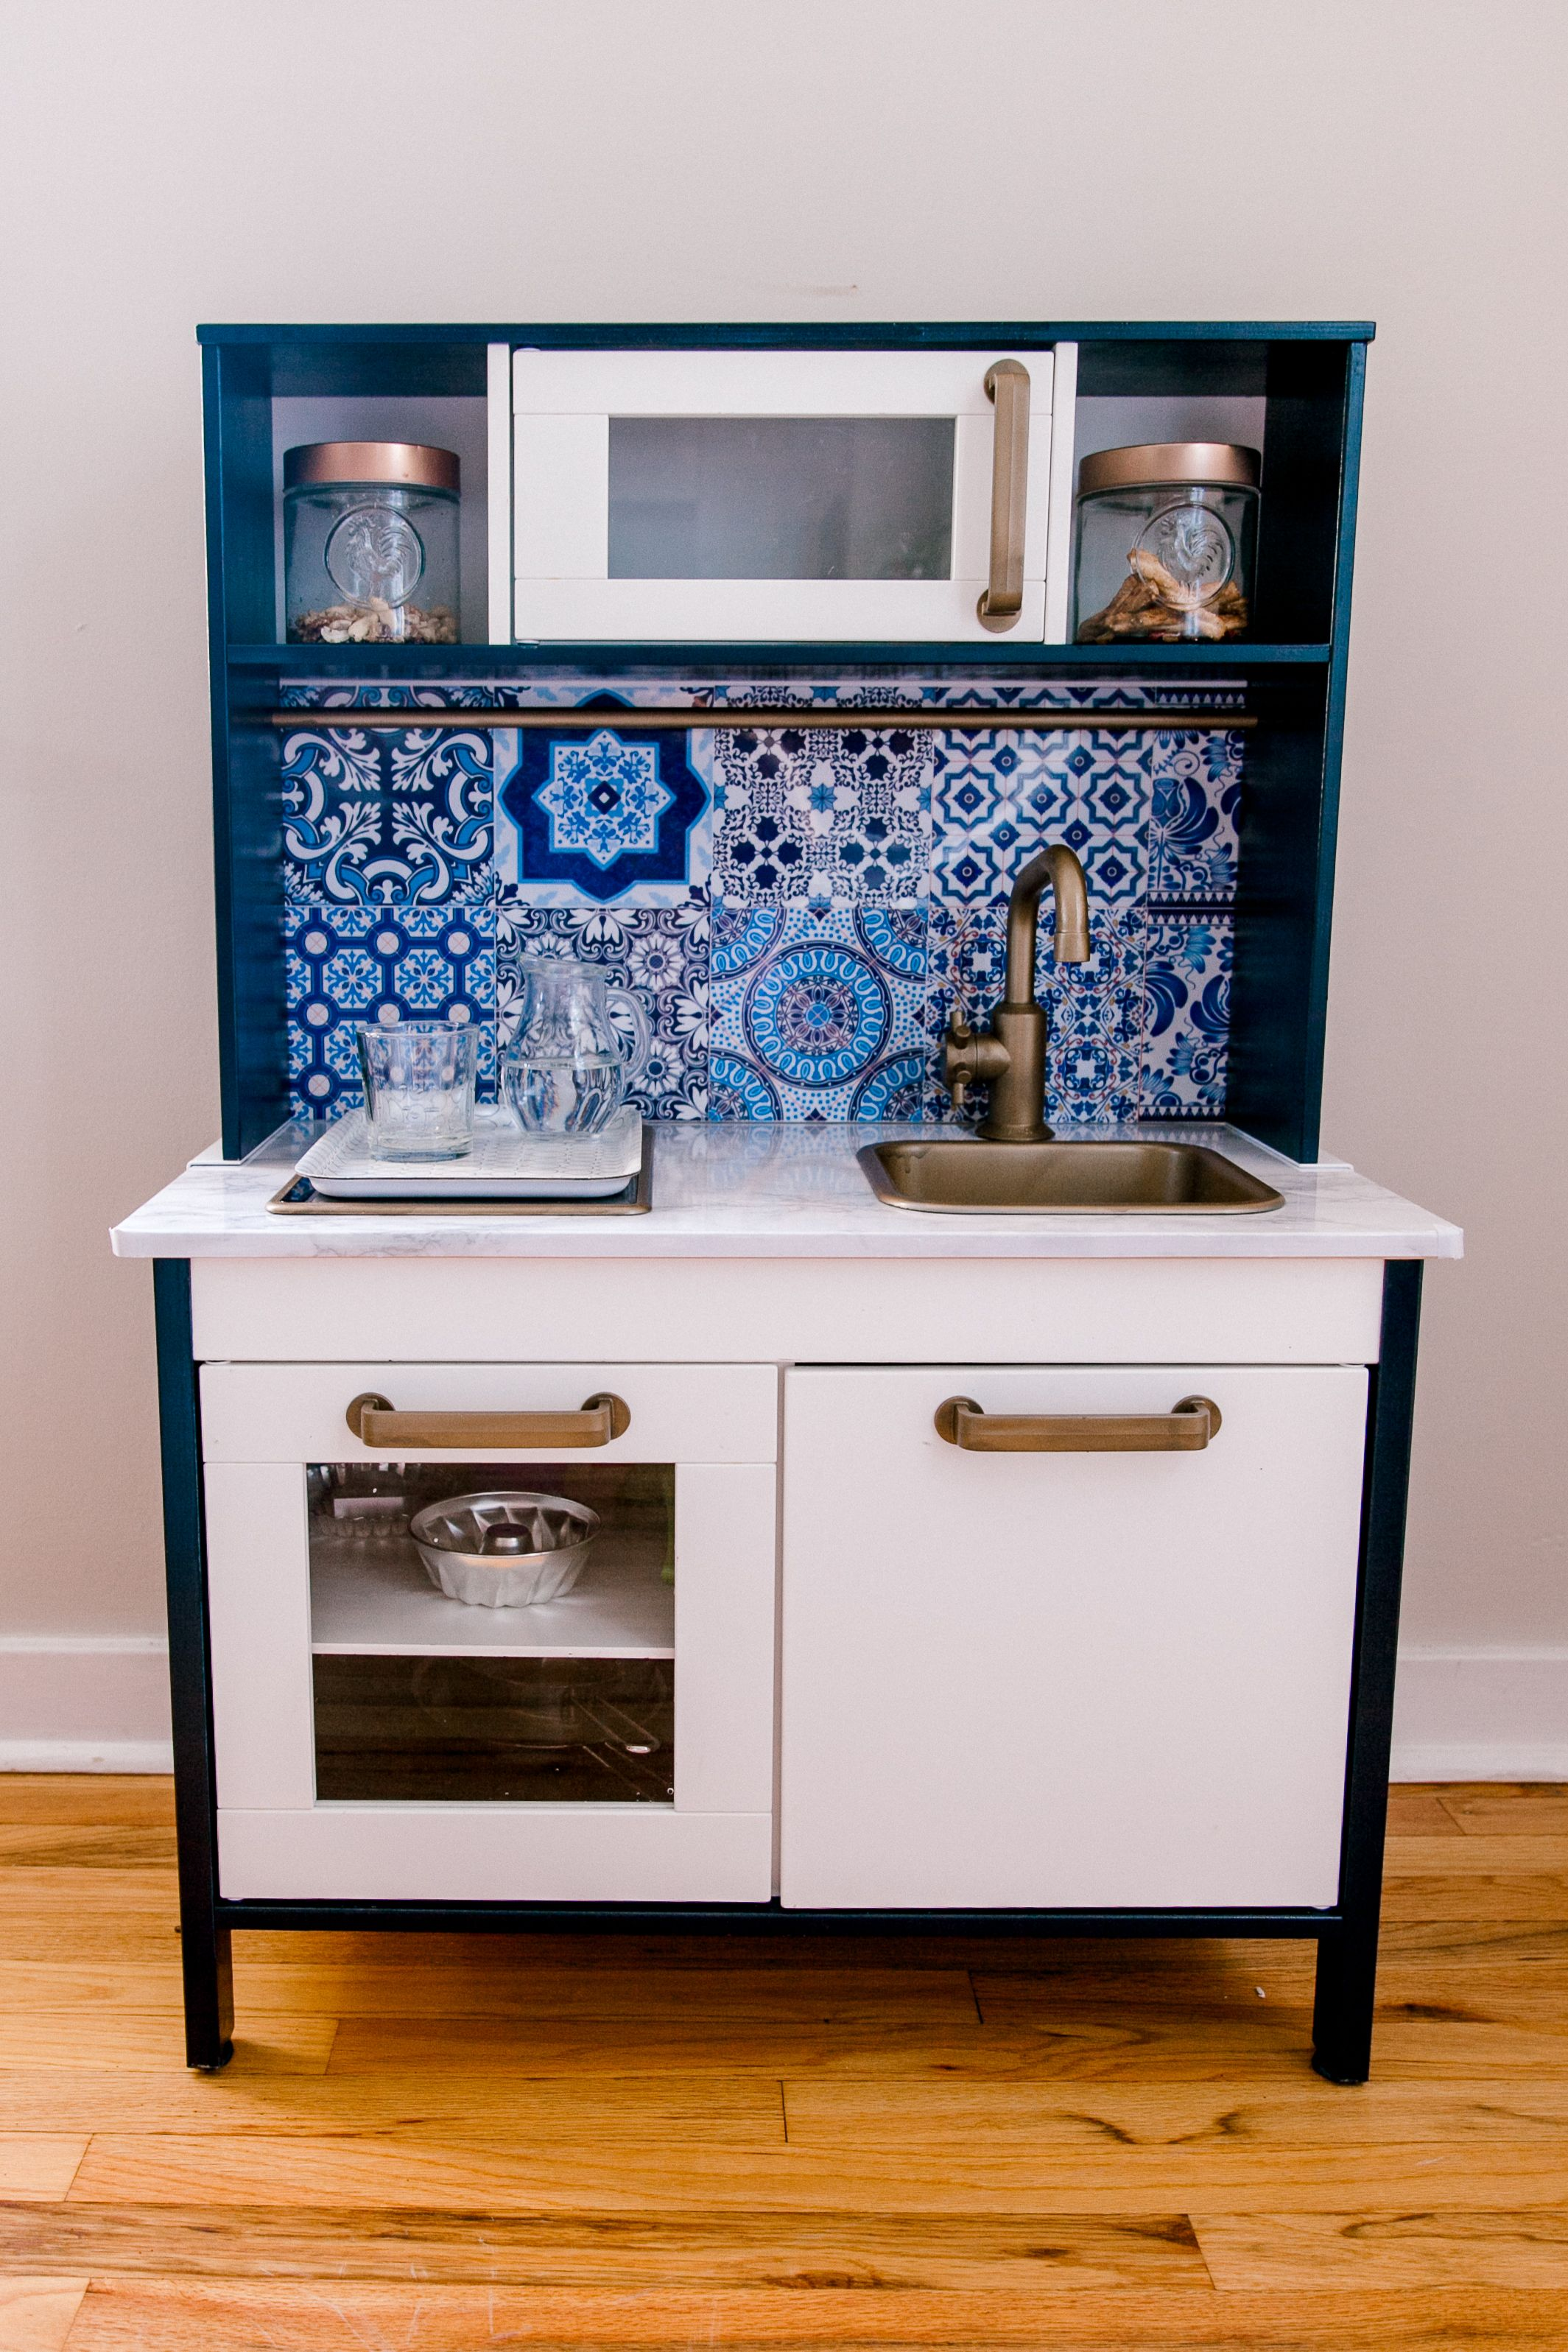 IKEA HACK BLUE MODERN PLAY KITCHEN (INSPIRED BY MOROCCO